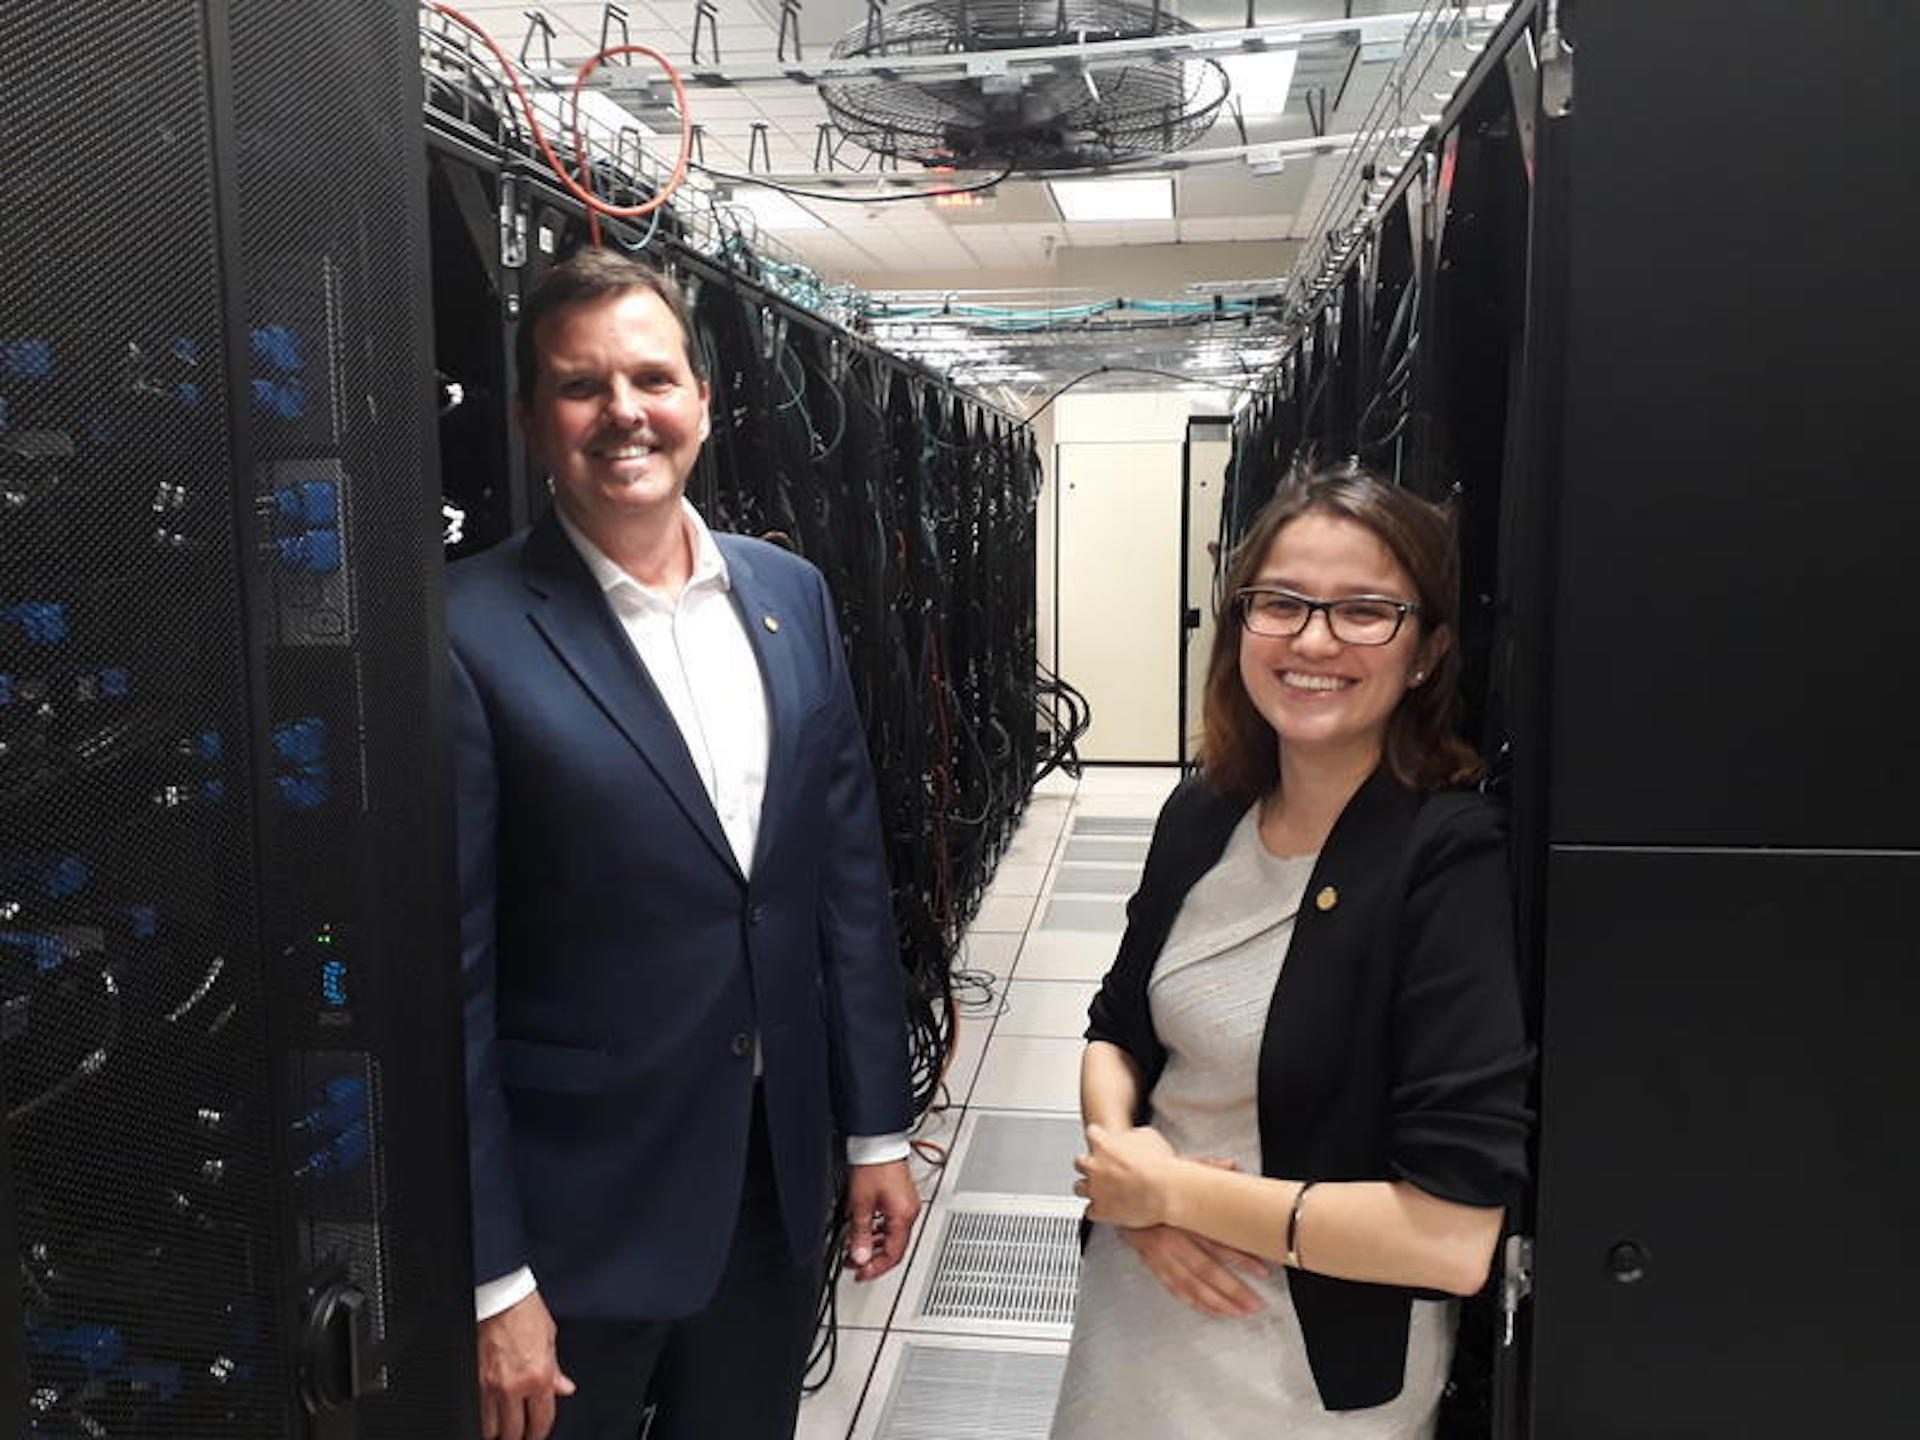 Chief Scientist Nick Nystrom (left) and Paola Buitrago, director of artificial intelligence and big data, of the Pittsburgh Supercomputing Center.